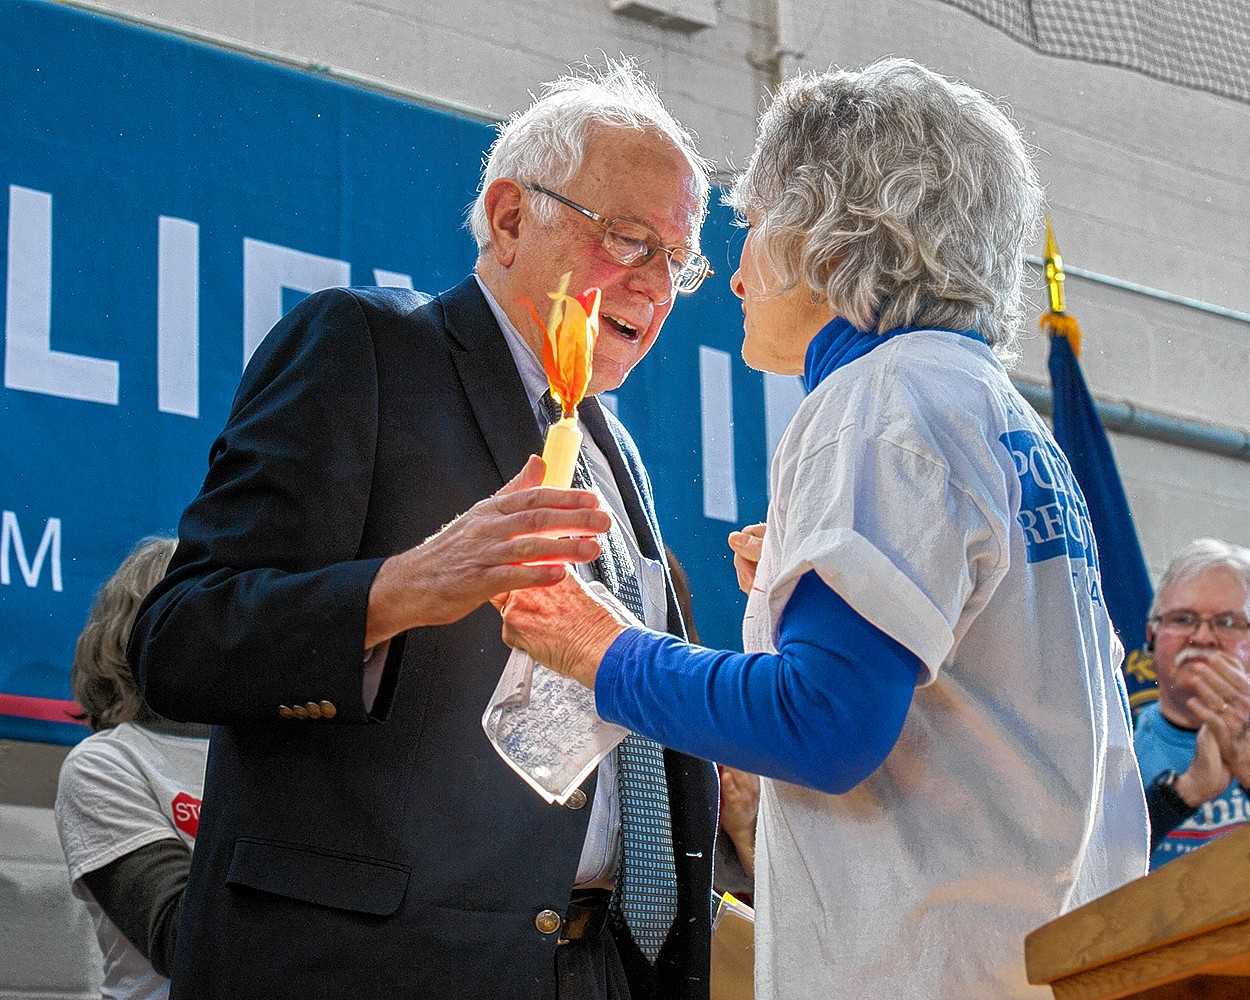 Senator Bernie Sanders visited with the citizens of the Peterborough, NH area this morning. A crowd of some 500 people listened enthusiastically to his campaign talk of income inequality, climate change, the Citizens United decision and high medical costs. Bernie received a symbolic Grannie D torch recognizing his fight to rid elections of big money interests.